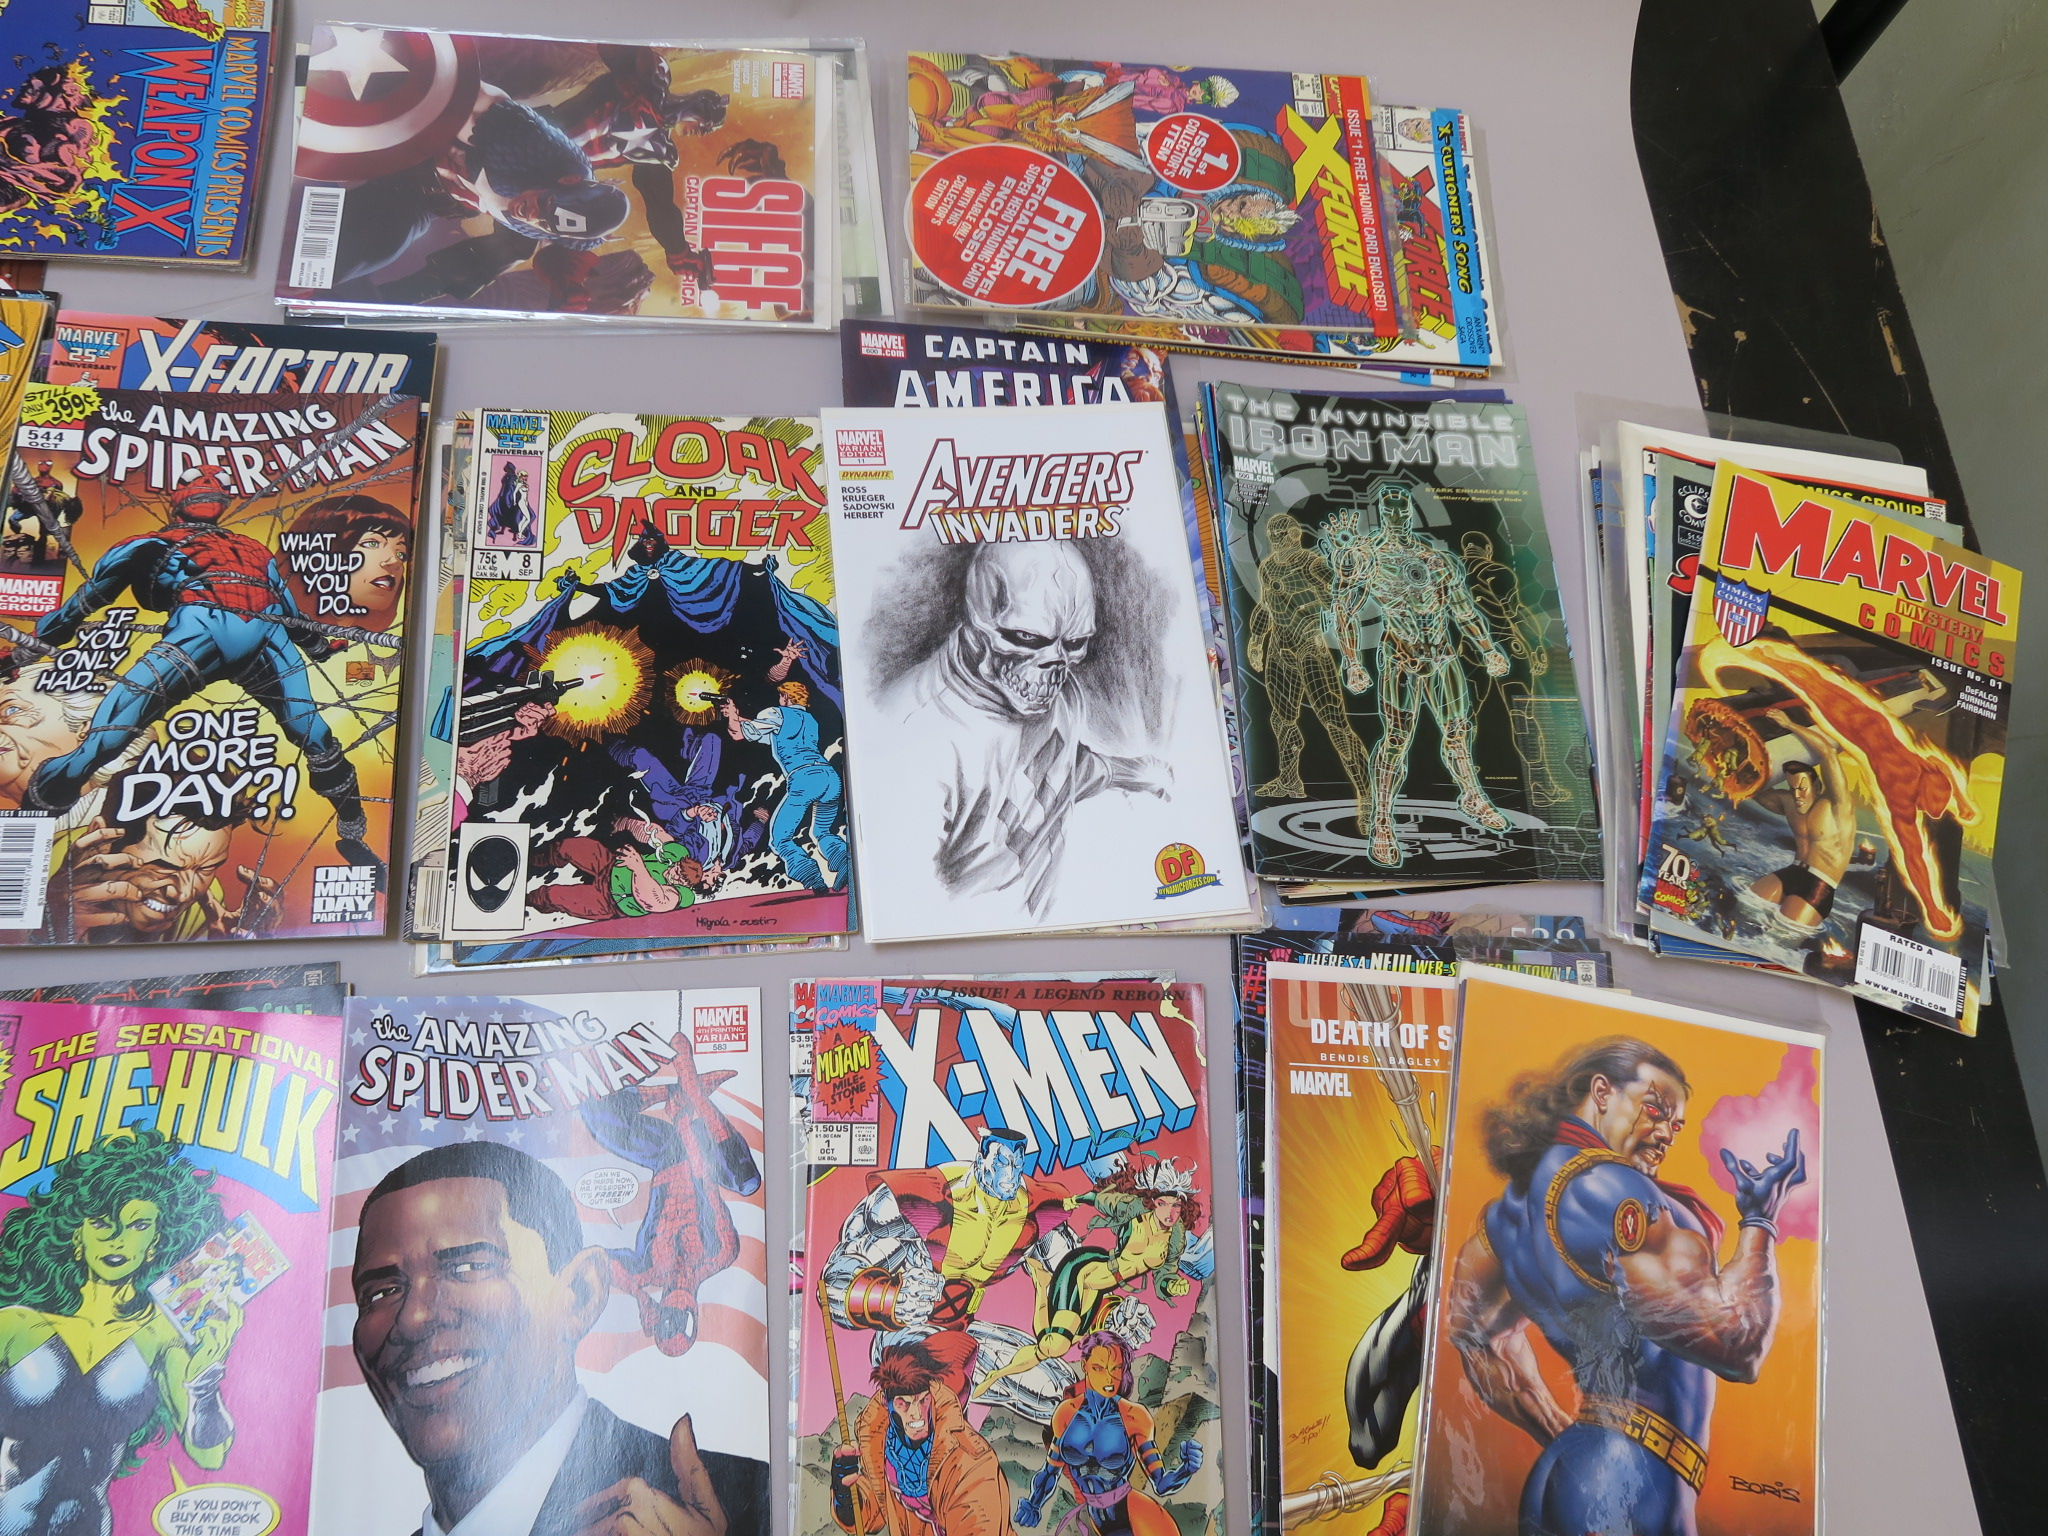 Lot 18 - Marvel comics in excellent condition including She-Hulk #1, X-Force 1 (sealed), Star Trek #1,